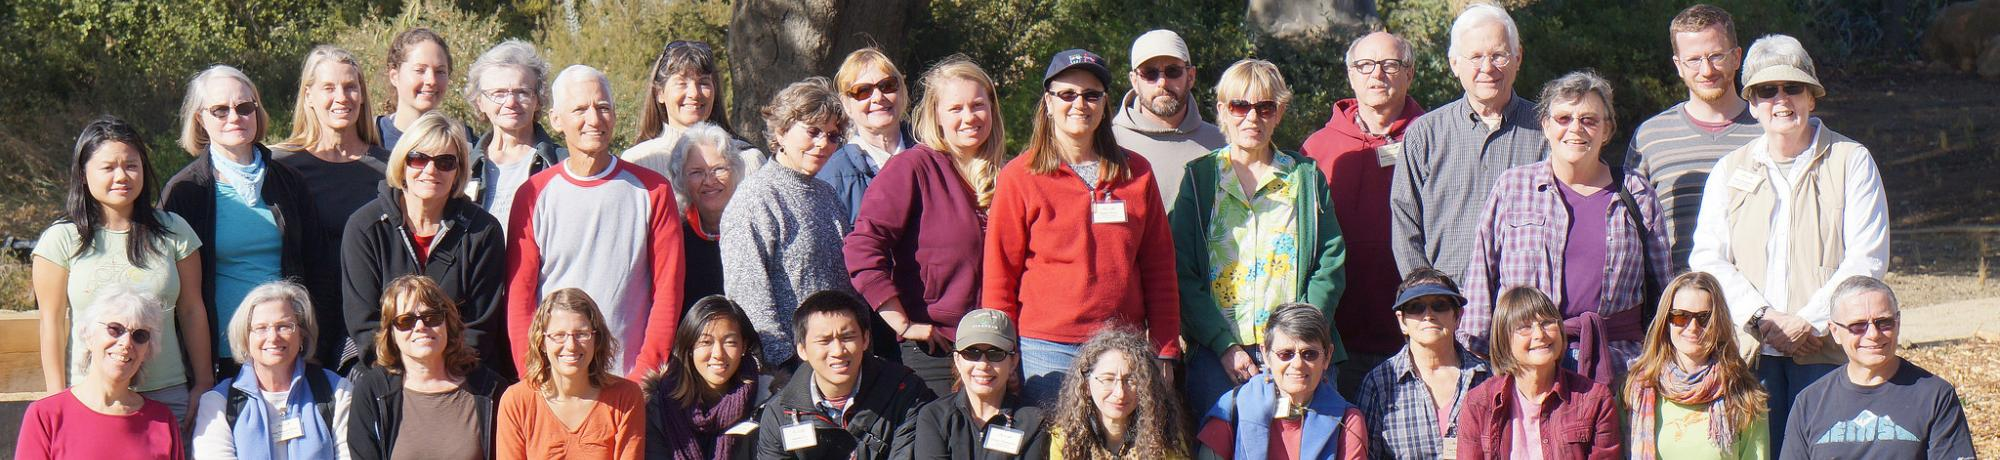 Image of members and volunteers at the UC Davis Arboretum GATEway Garden